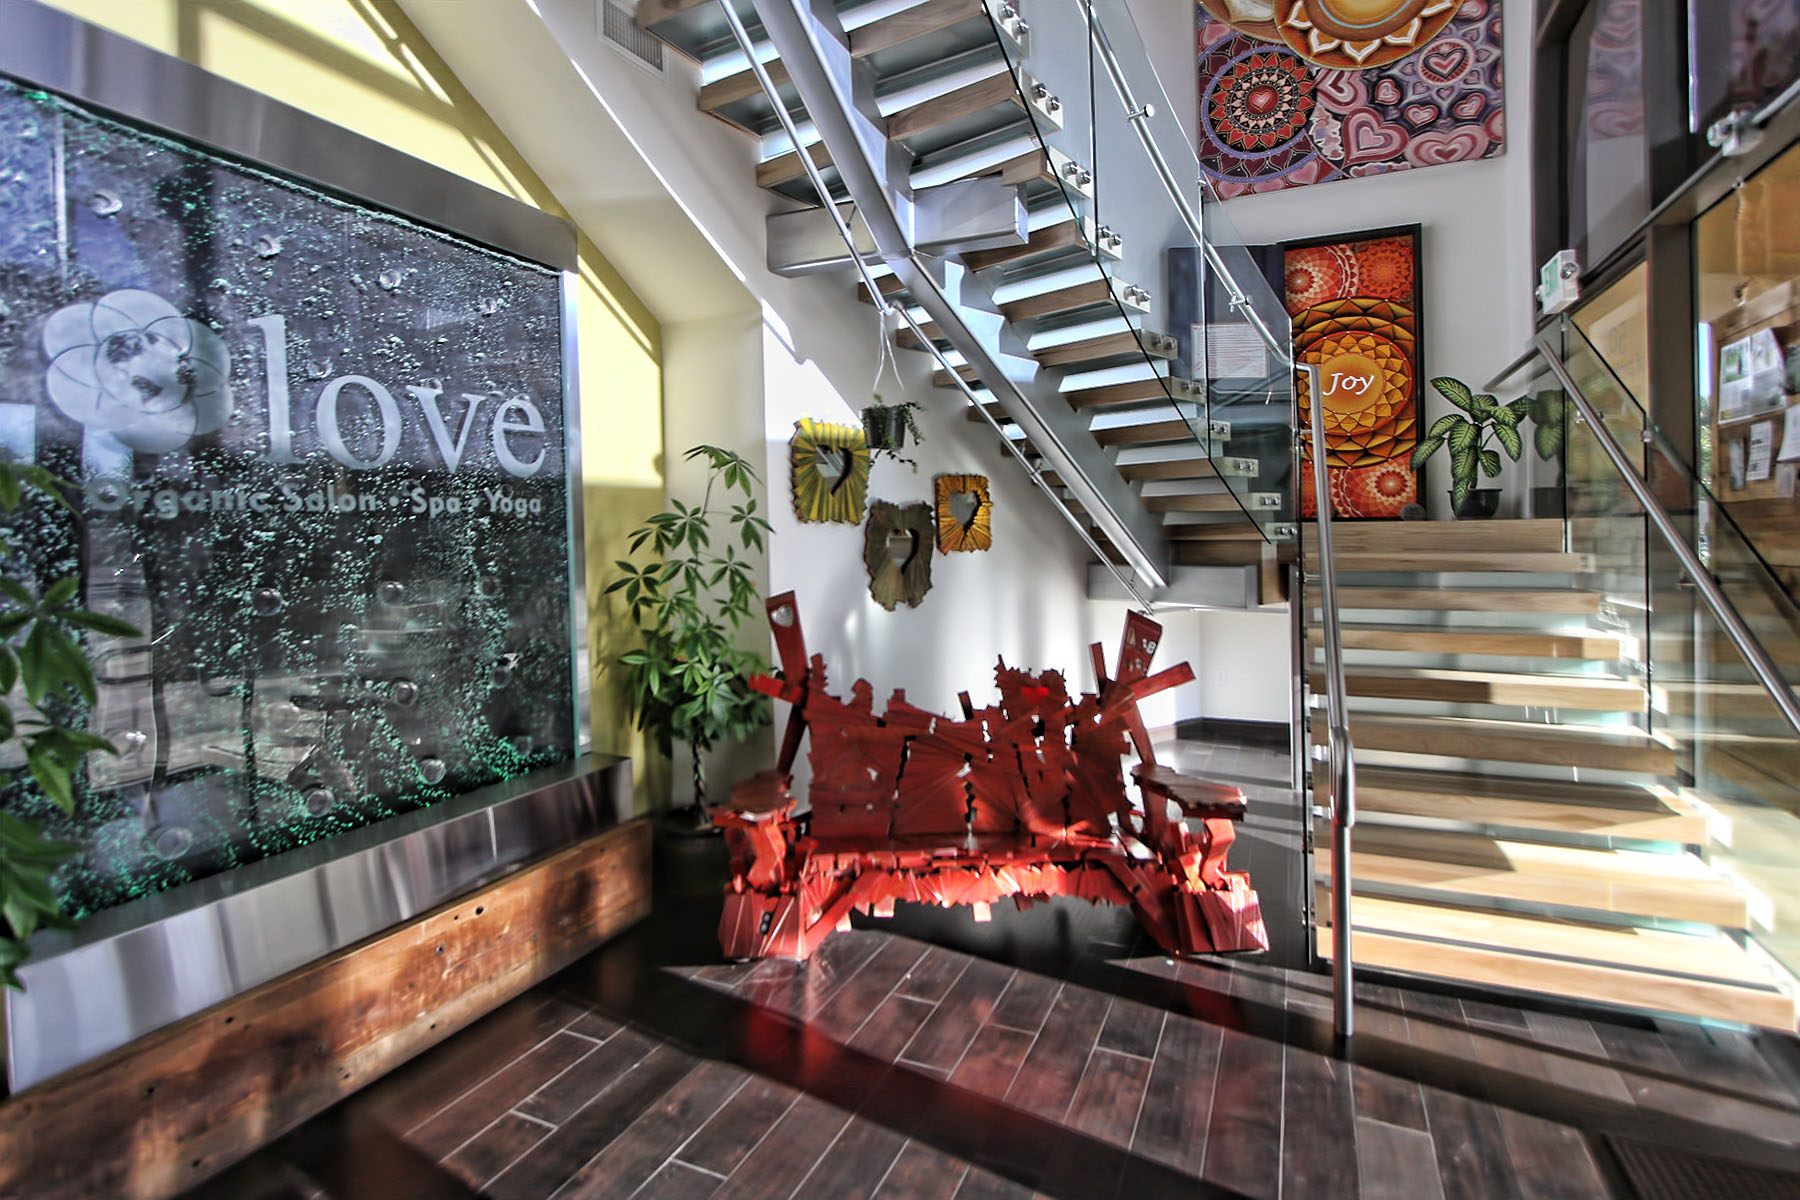 Love Yoga Salon